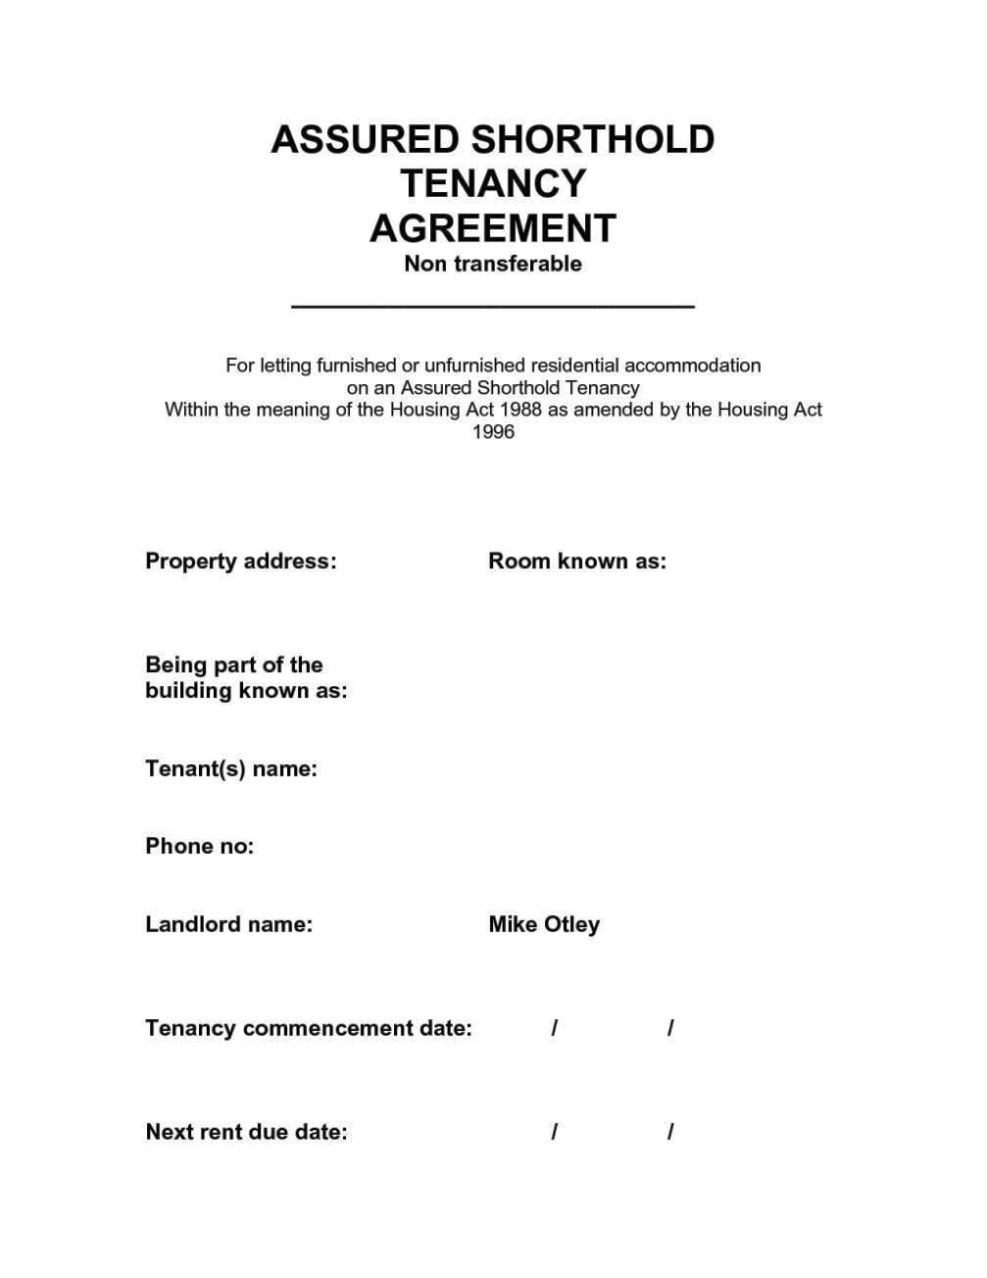 90 Info Free Word Doc Tenancy Agreement Pdf Doc Download